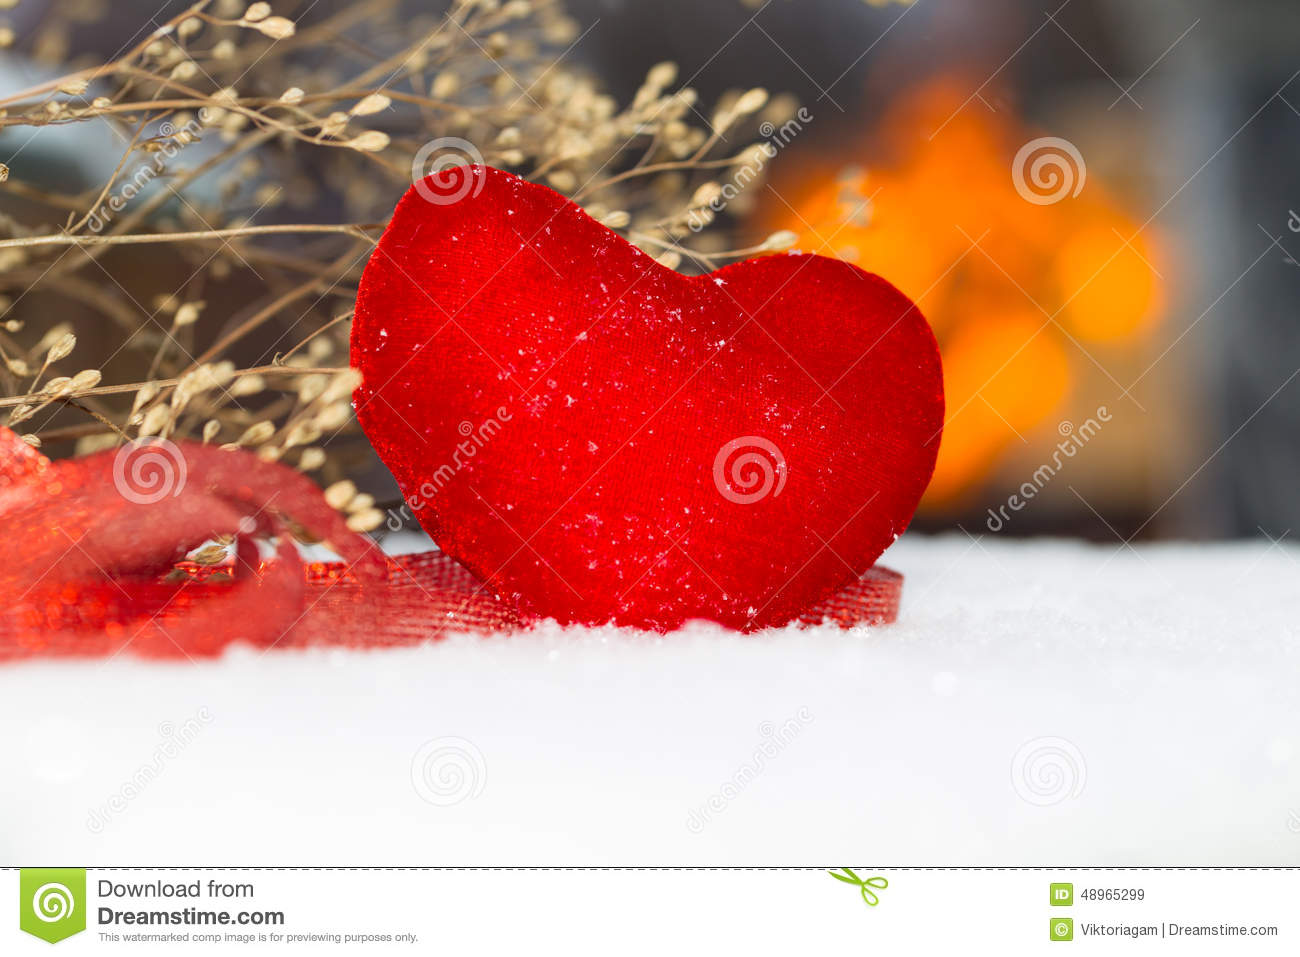 Red plush heart as a symbol of love valentines name stock image red plush heart as a symbol of love valentine s name biocorpaavc Images